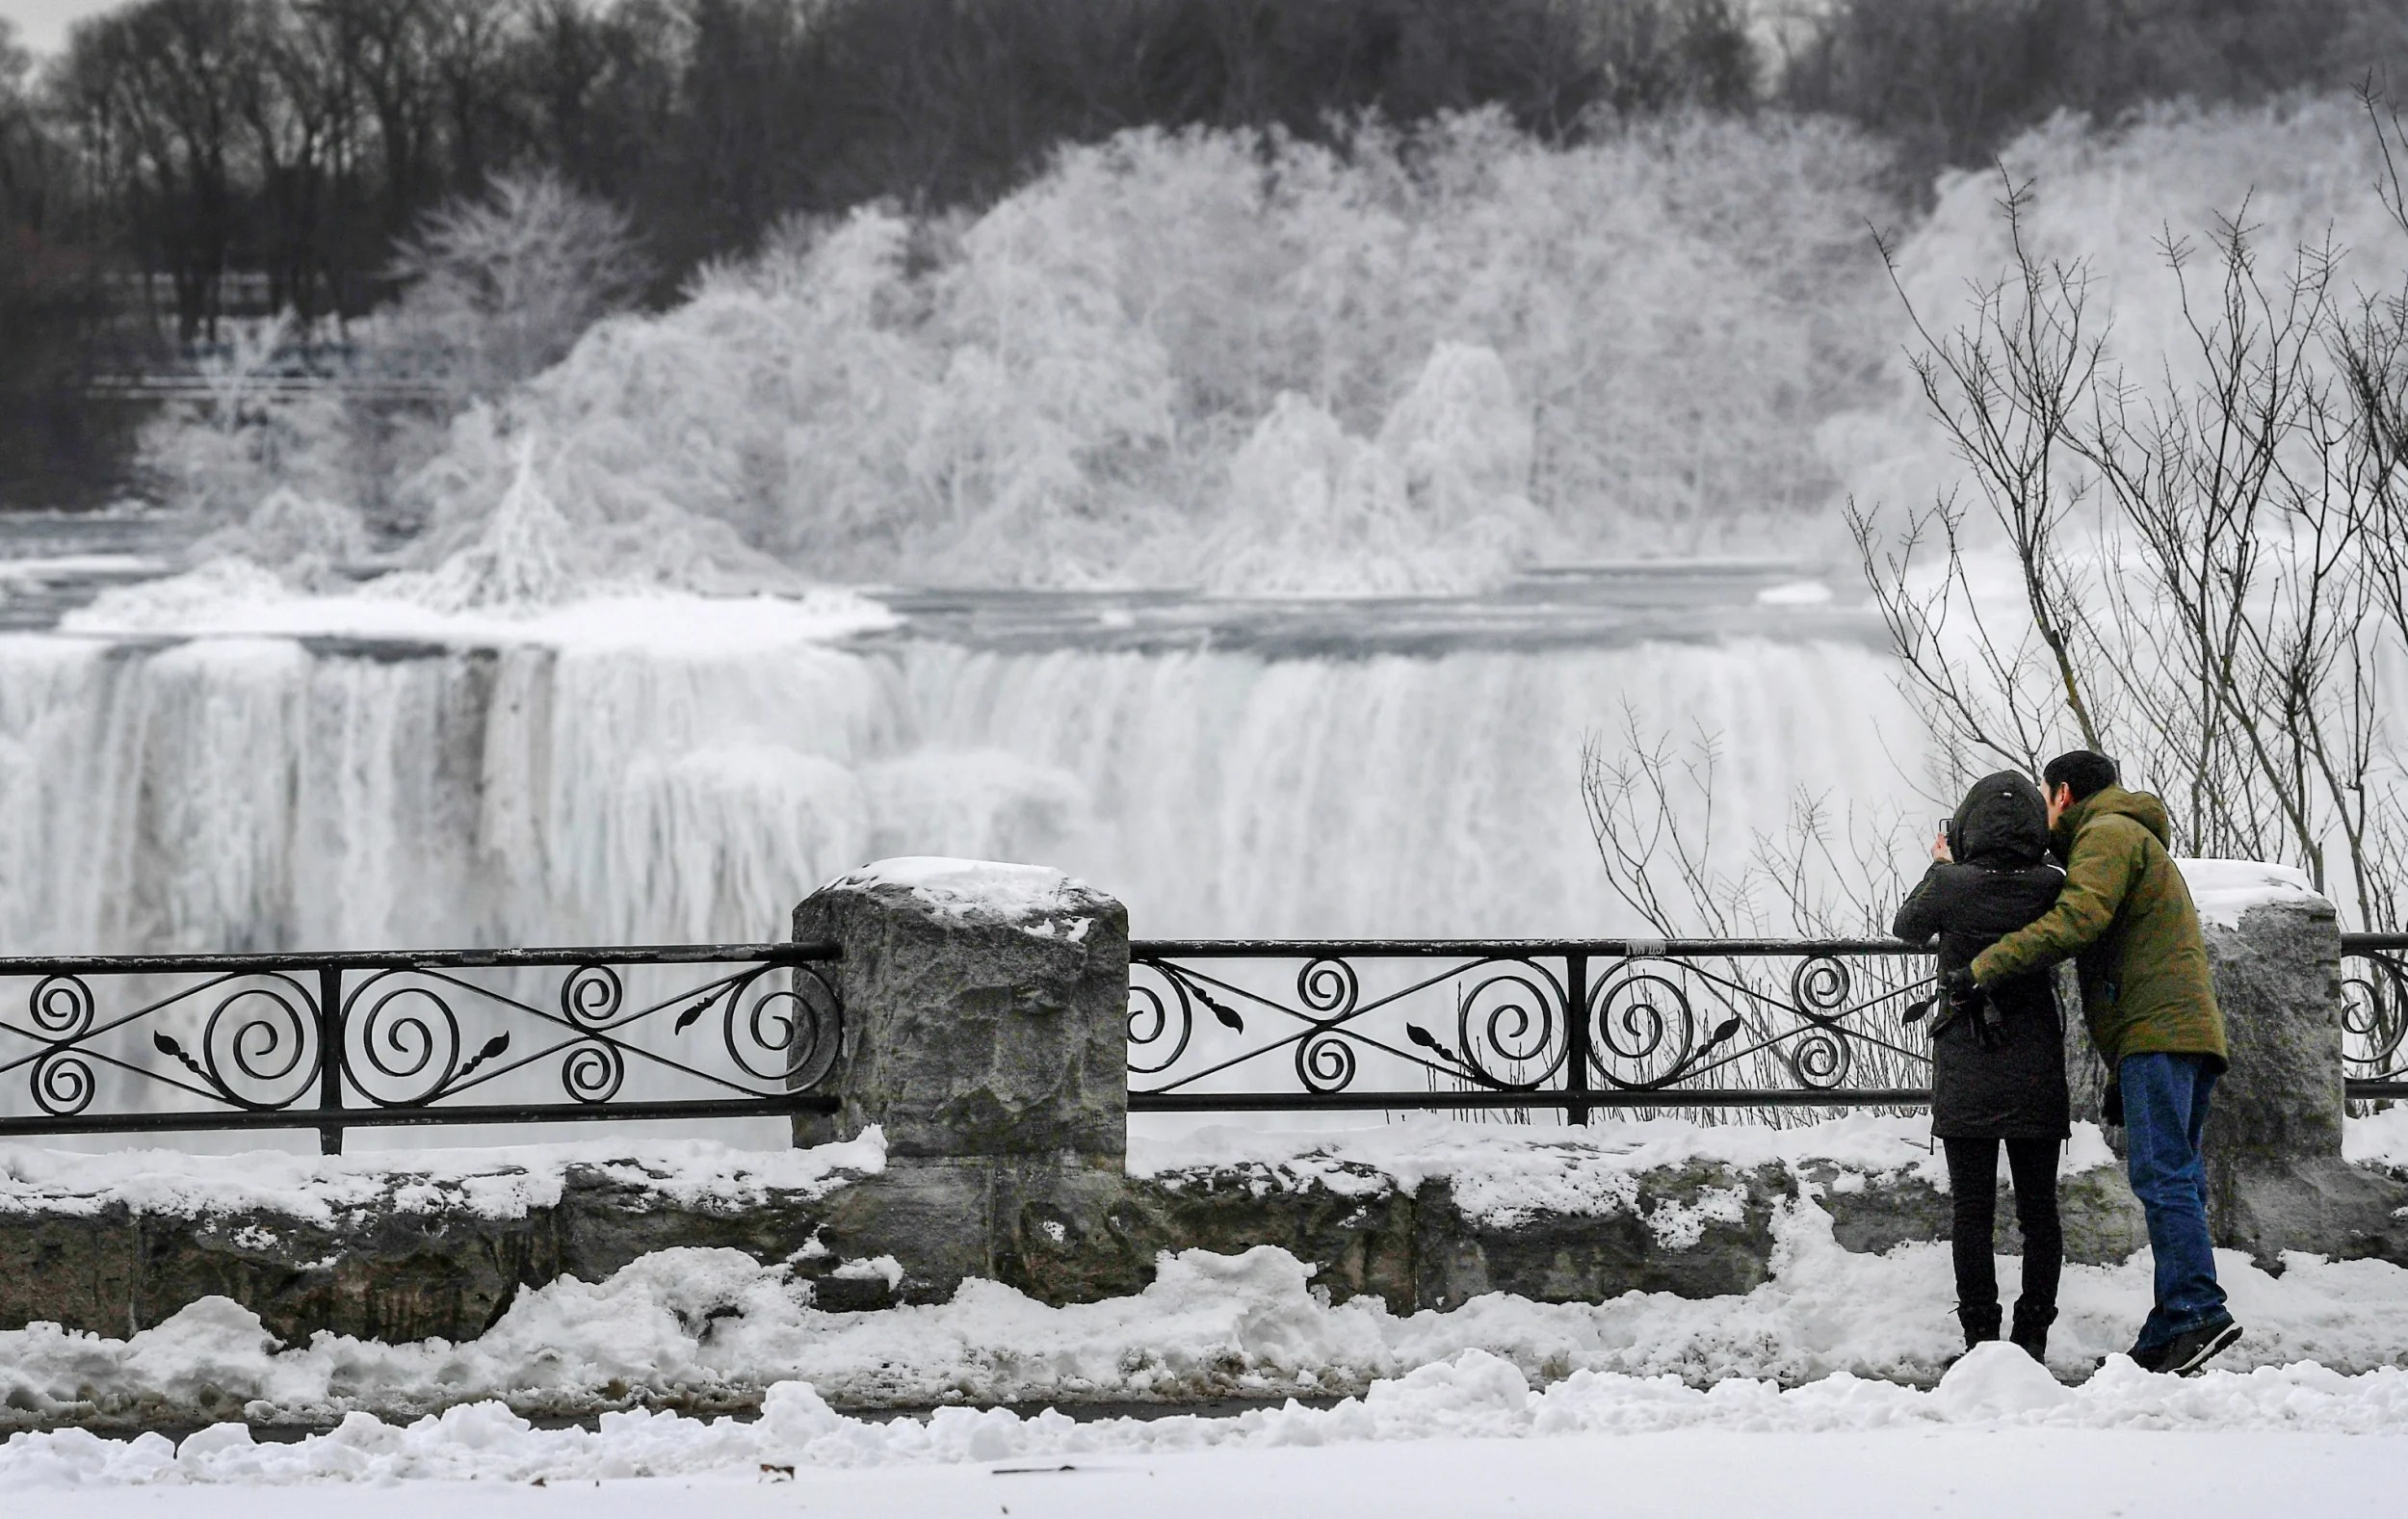 Niagara Falls Transformed Into Winter Wonderland As